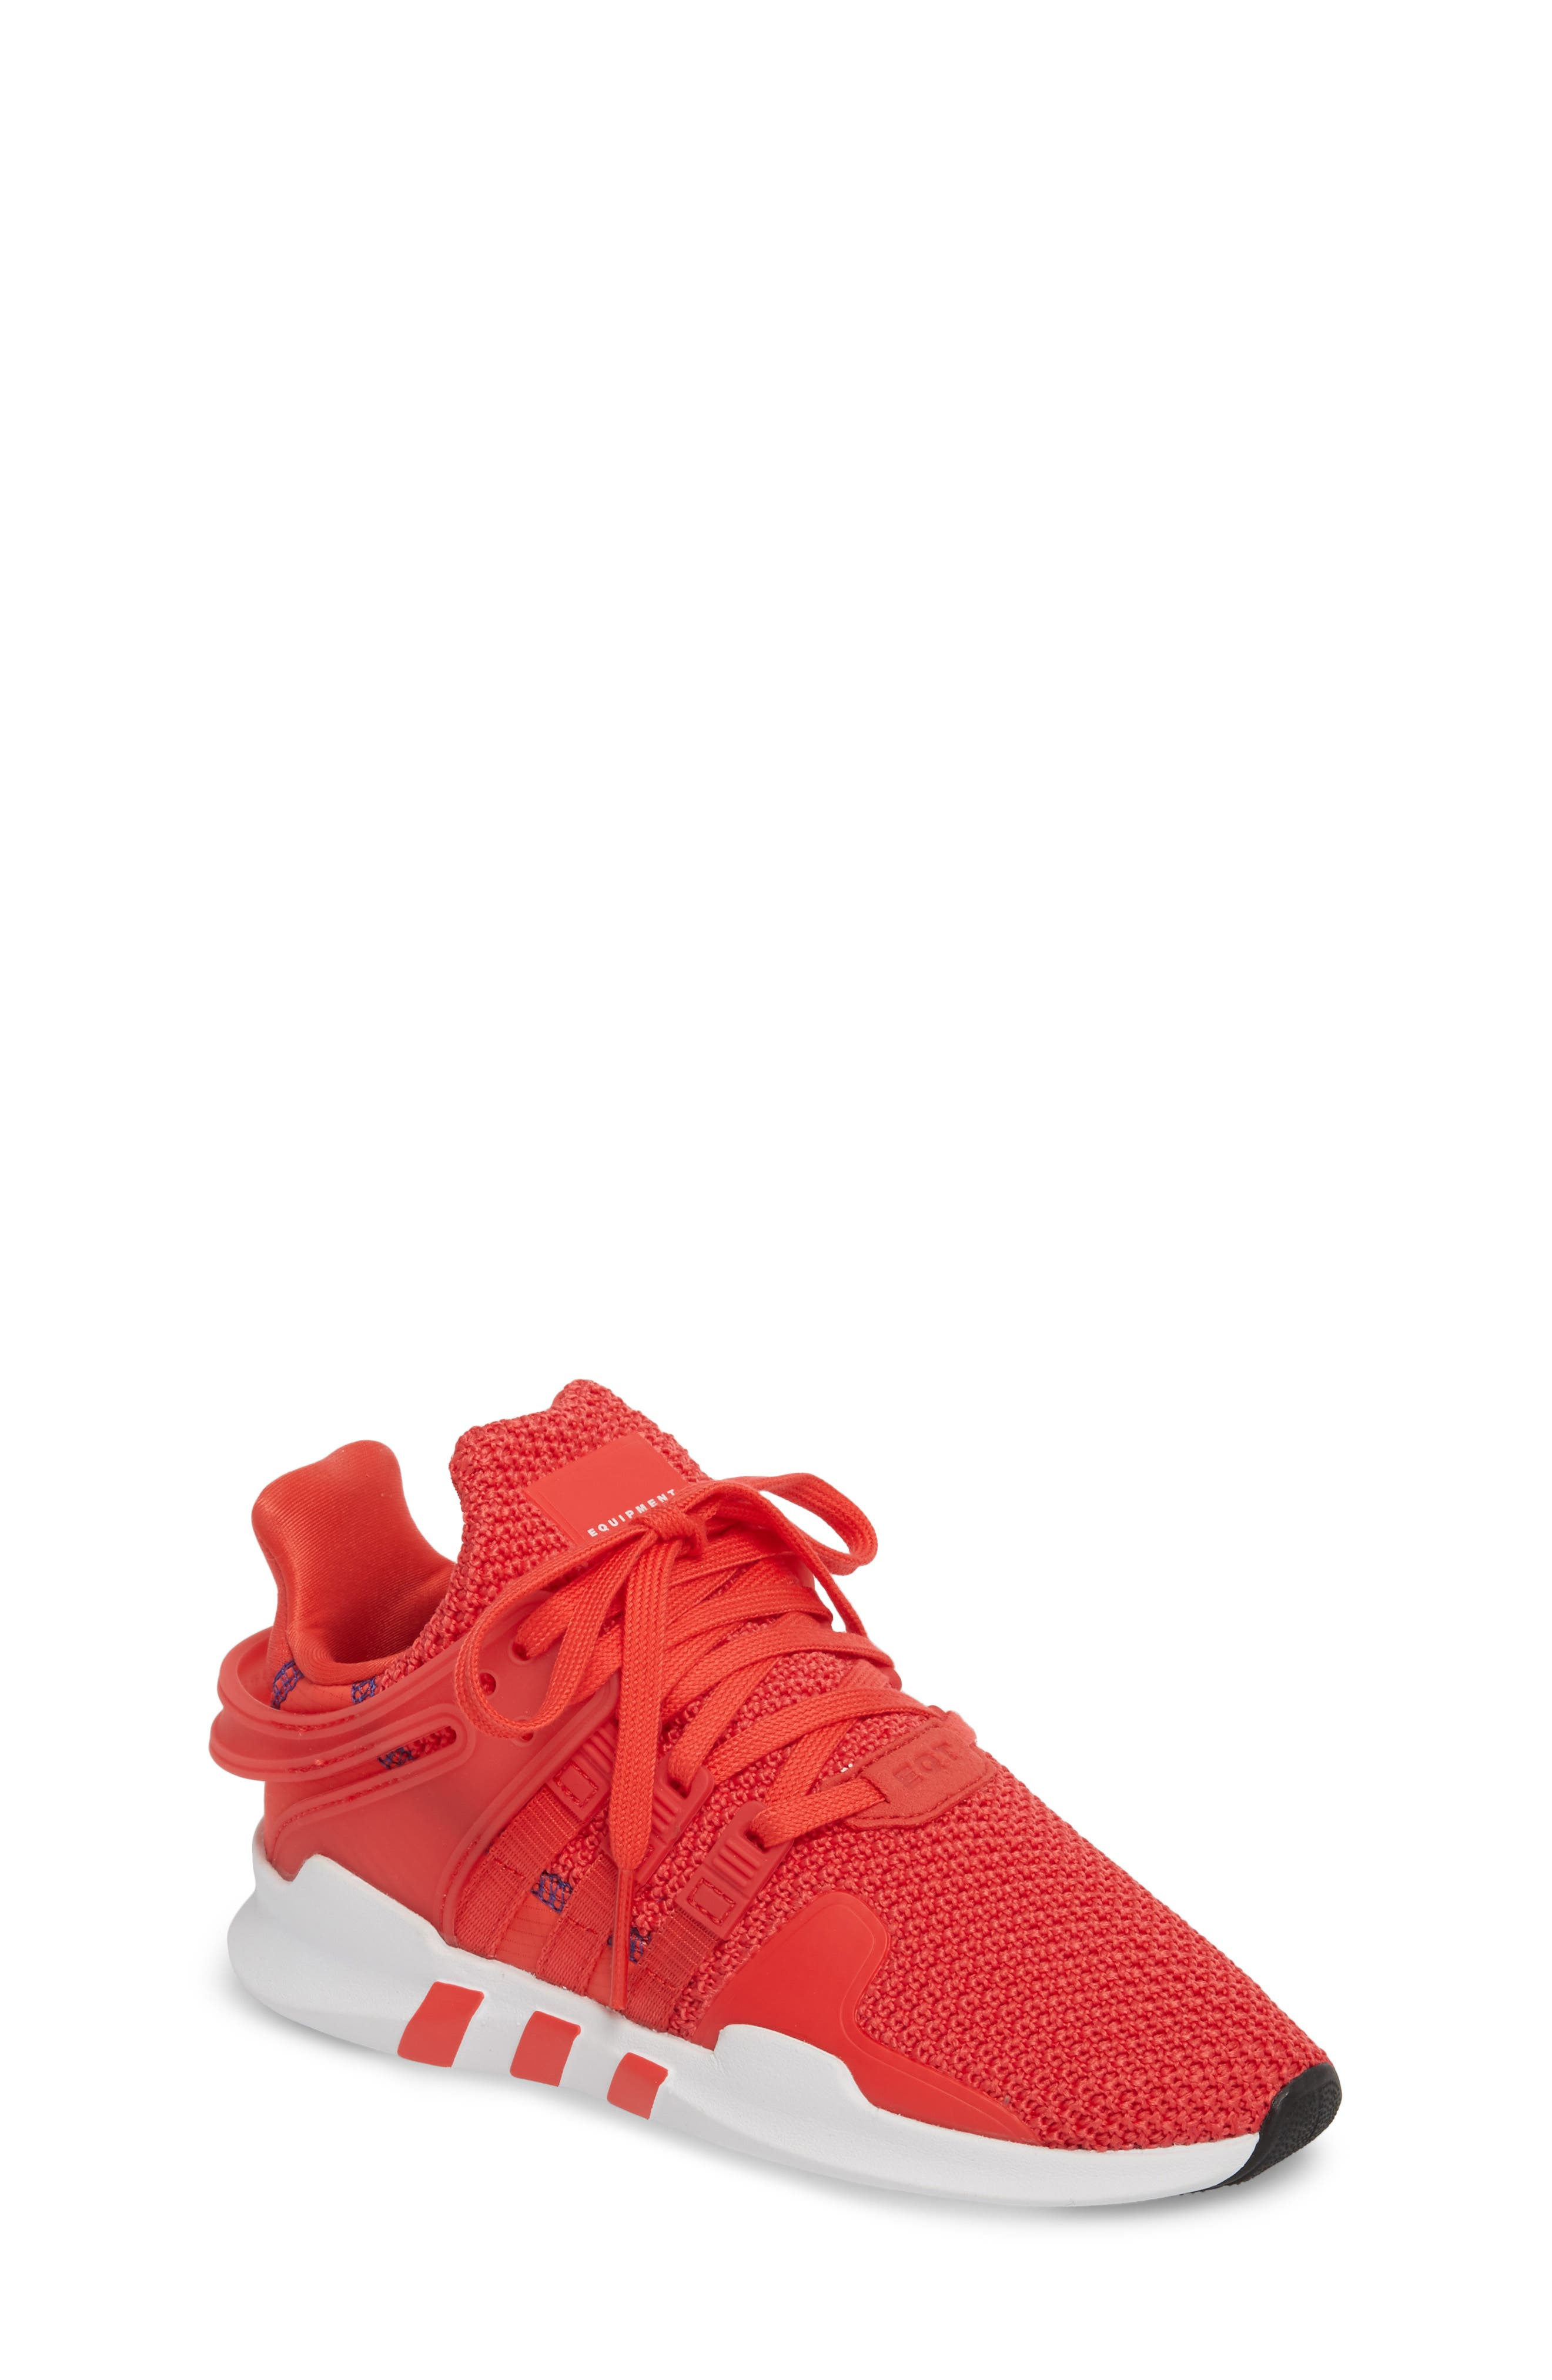 EQT Support Adv Sneaker,                             Main thumbnail 1, color,                             Coral White